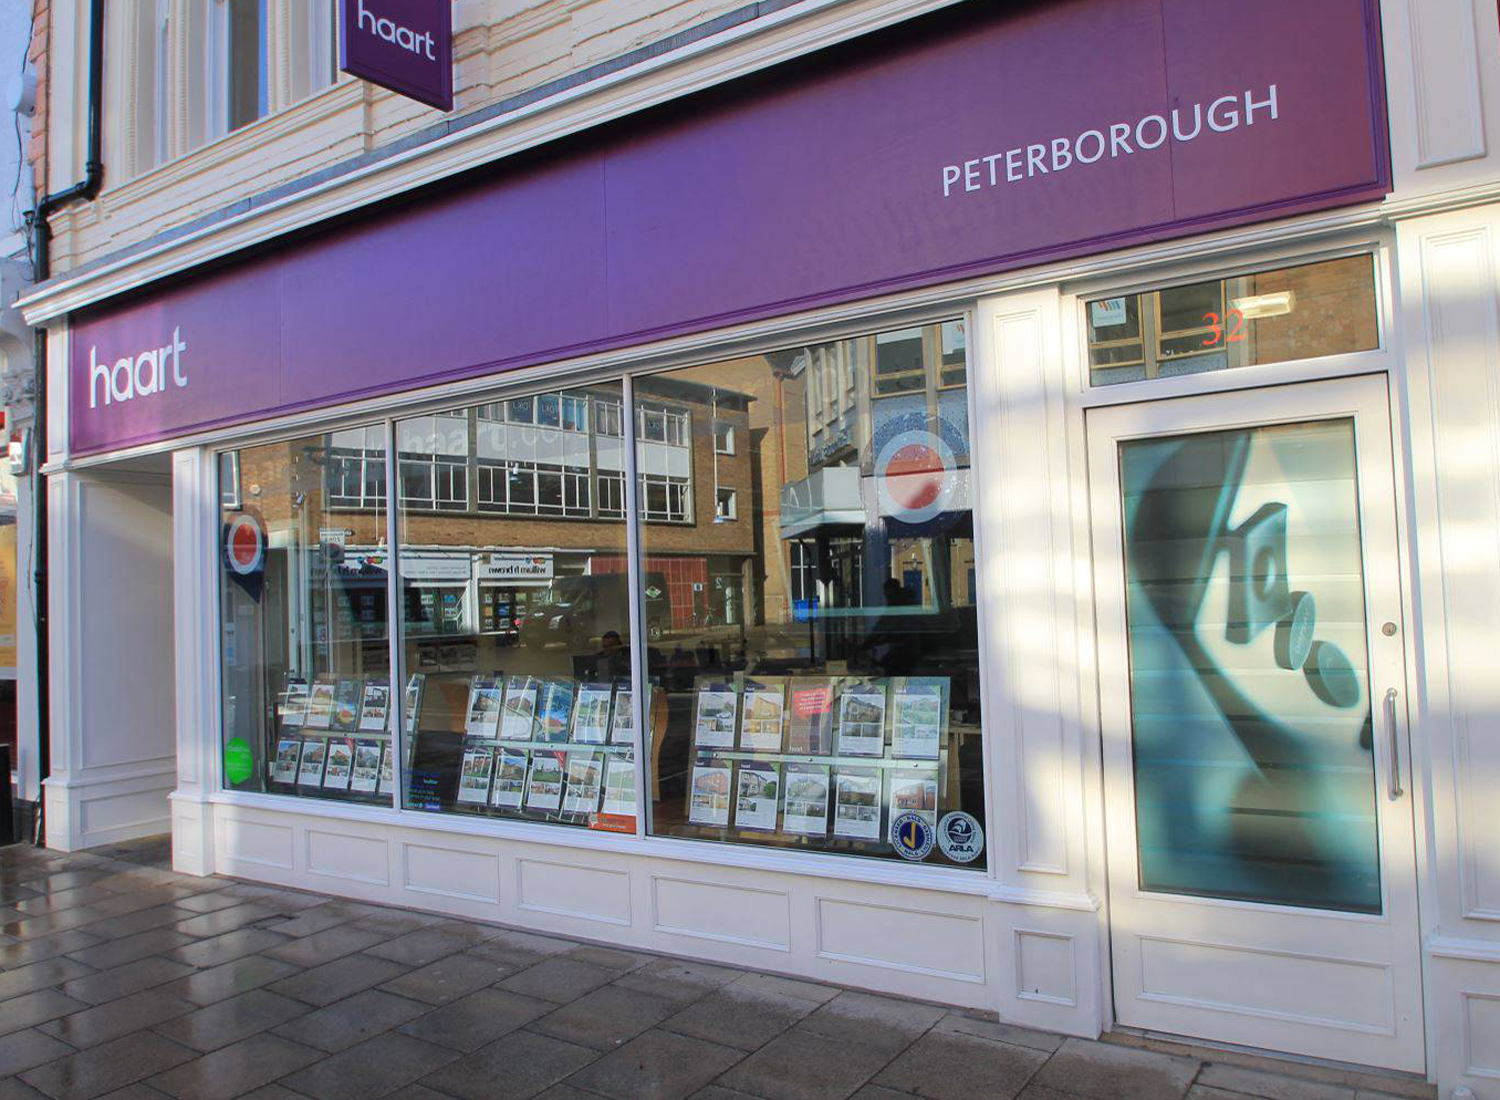 haart estate agents Peterborough